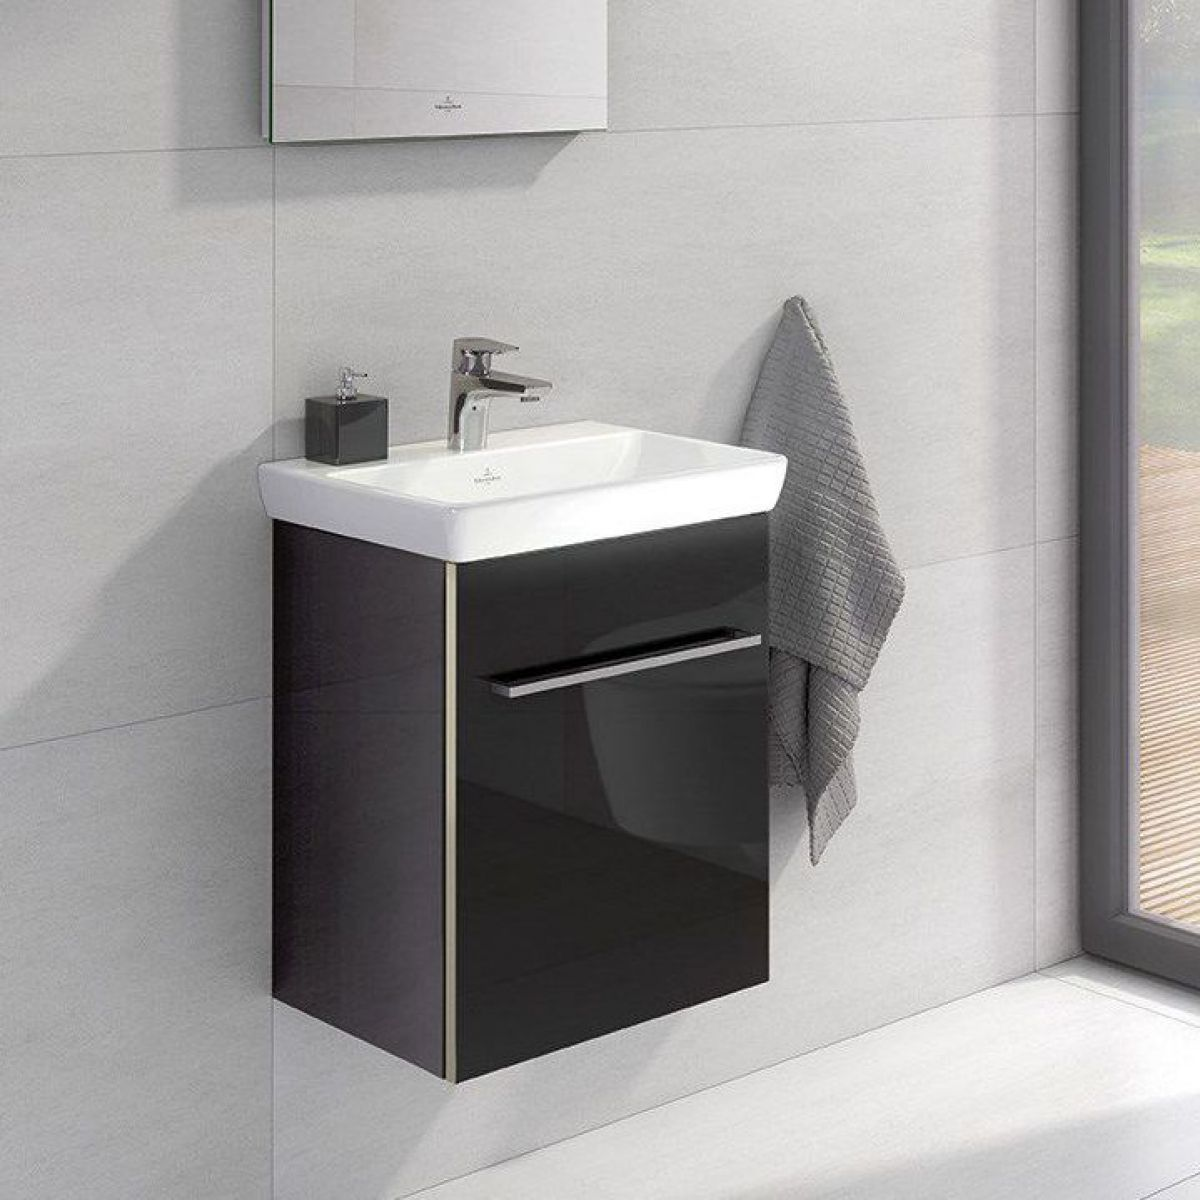 villeroy boch avento single door vanity unit basin. Black Bedroom Furniture Sets. Home Design Ideas